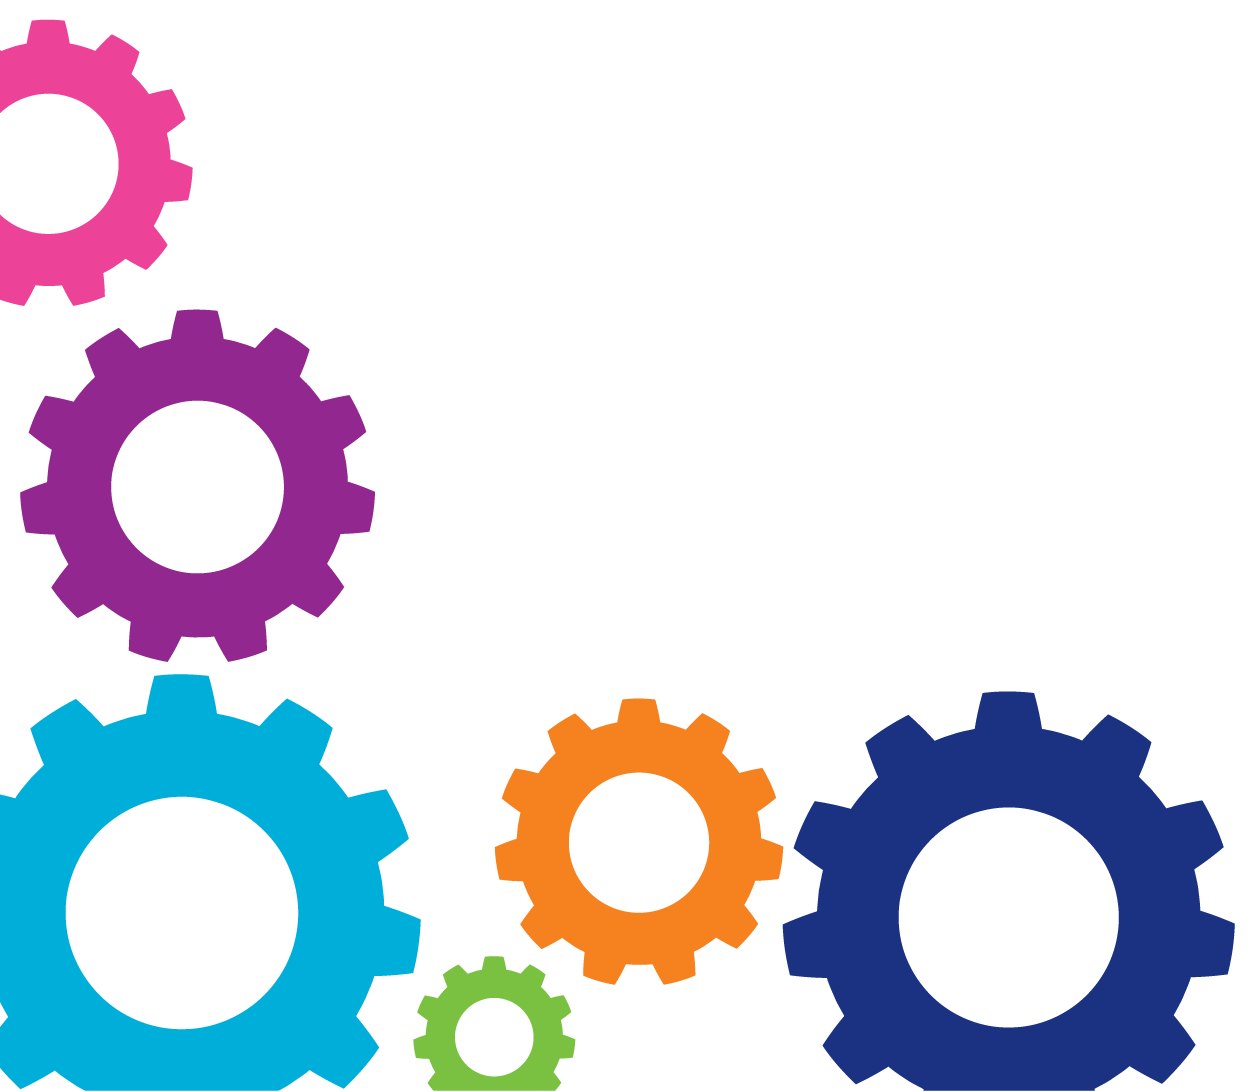 Gears png transparent images. Gear clipart colorful gear